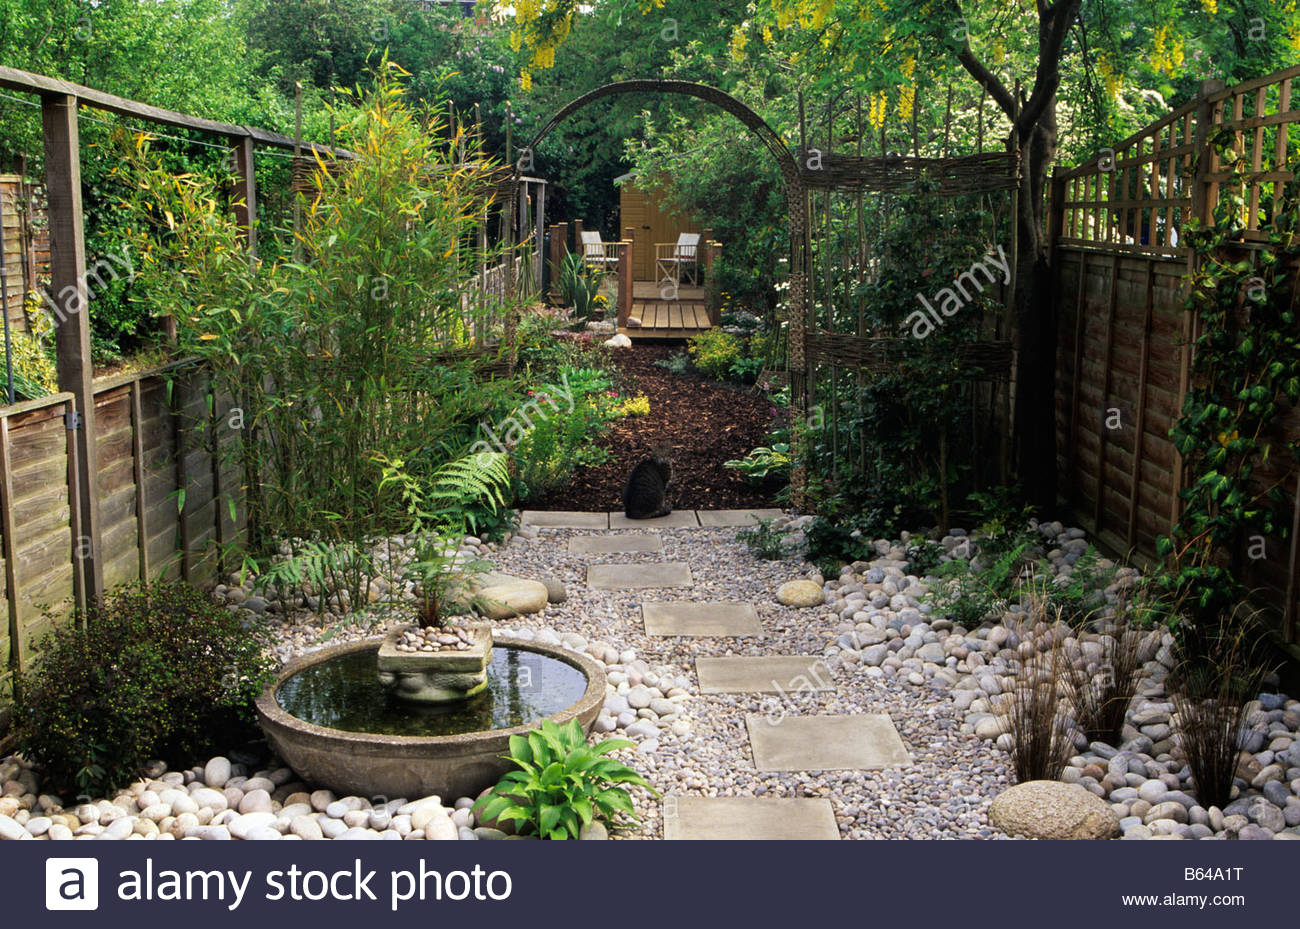 Hallowell Rd Middx design Alan Titchmarsh Japanese style garden with arch  pebbles stones cat wooden fence stepping stones water